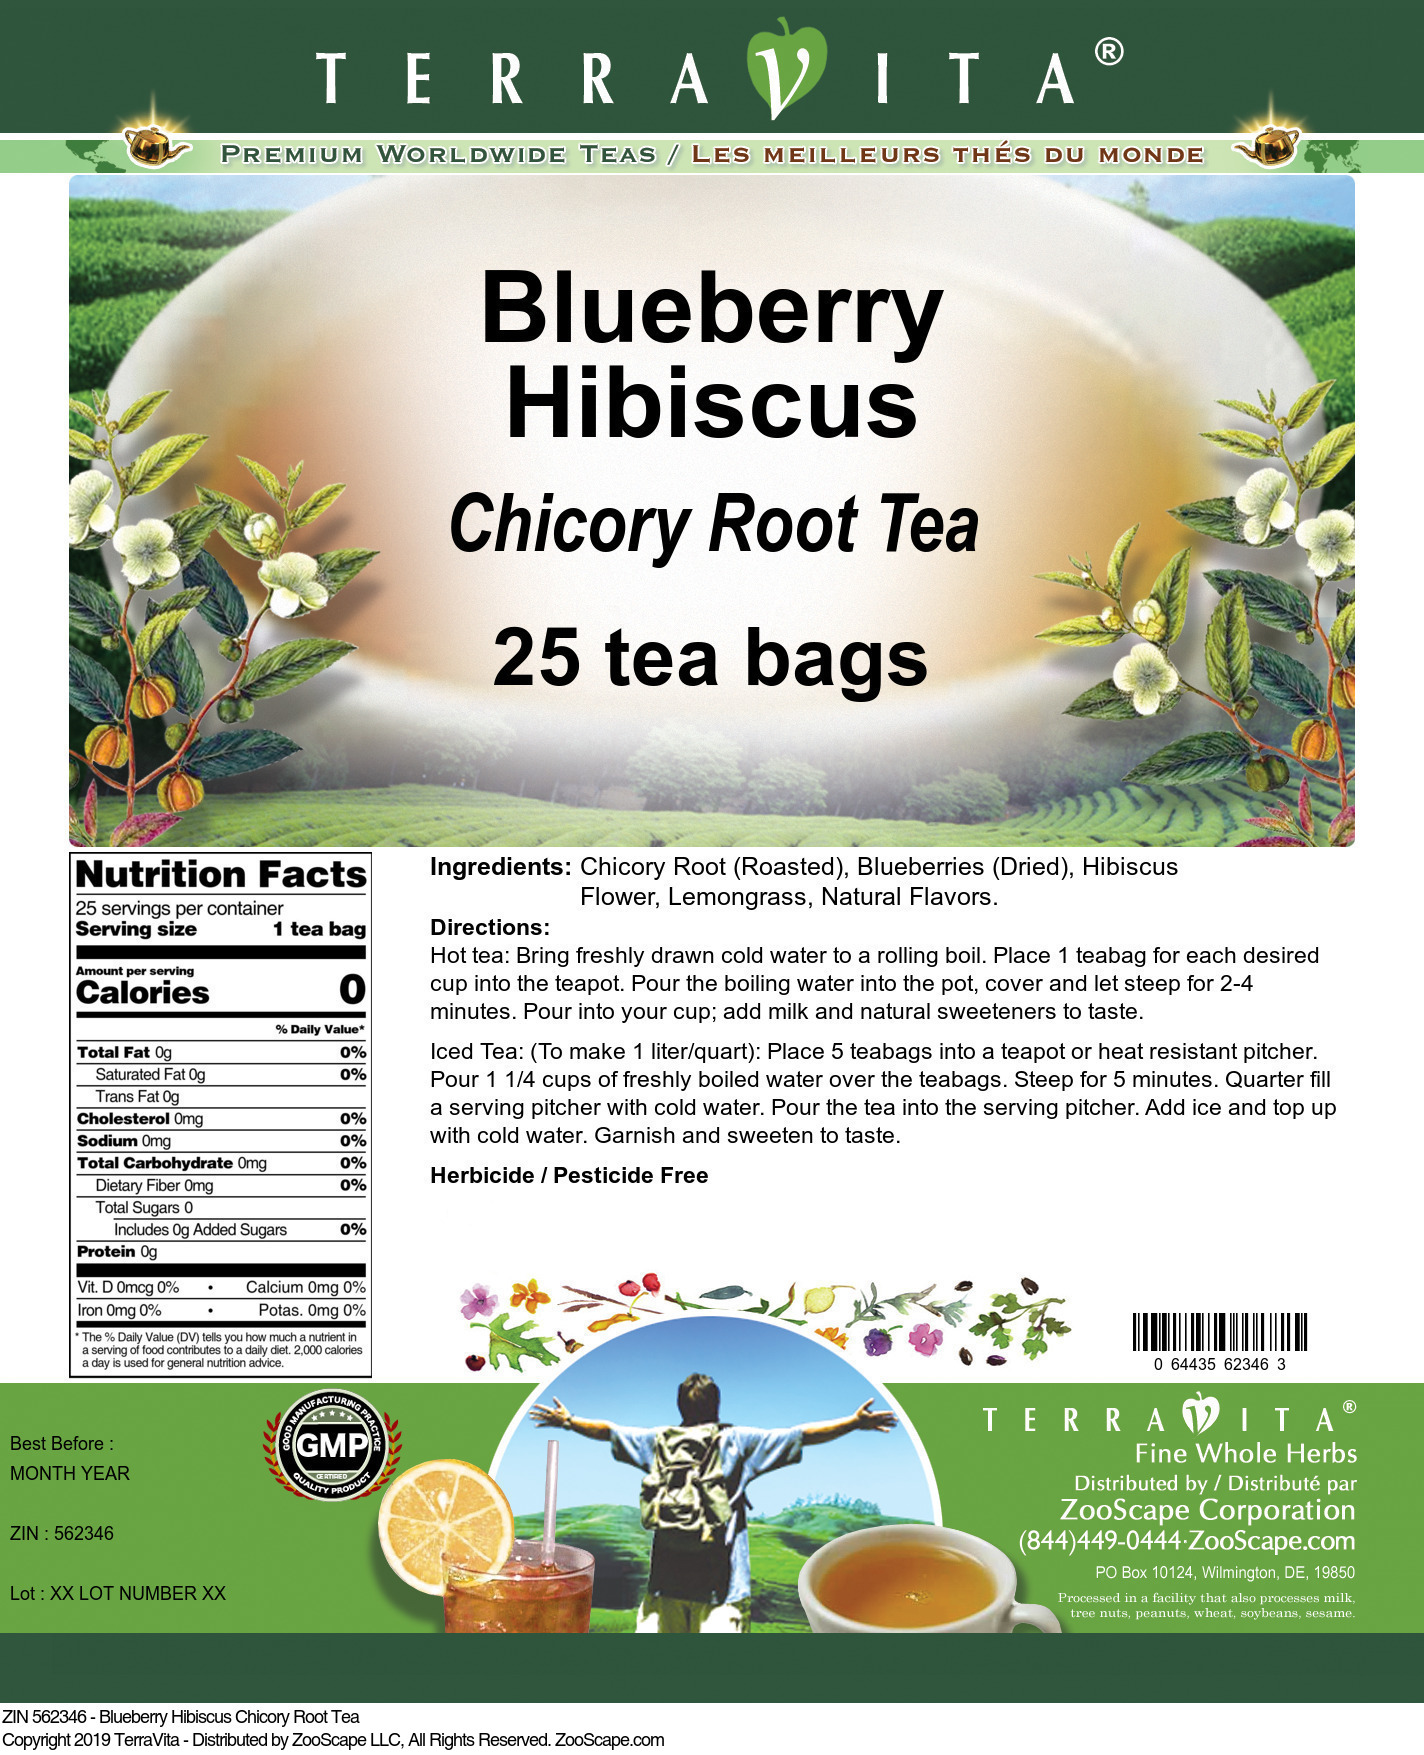 Blueberry Hibiscus Chicory Root